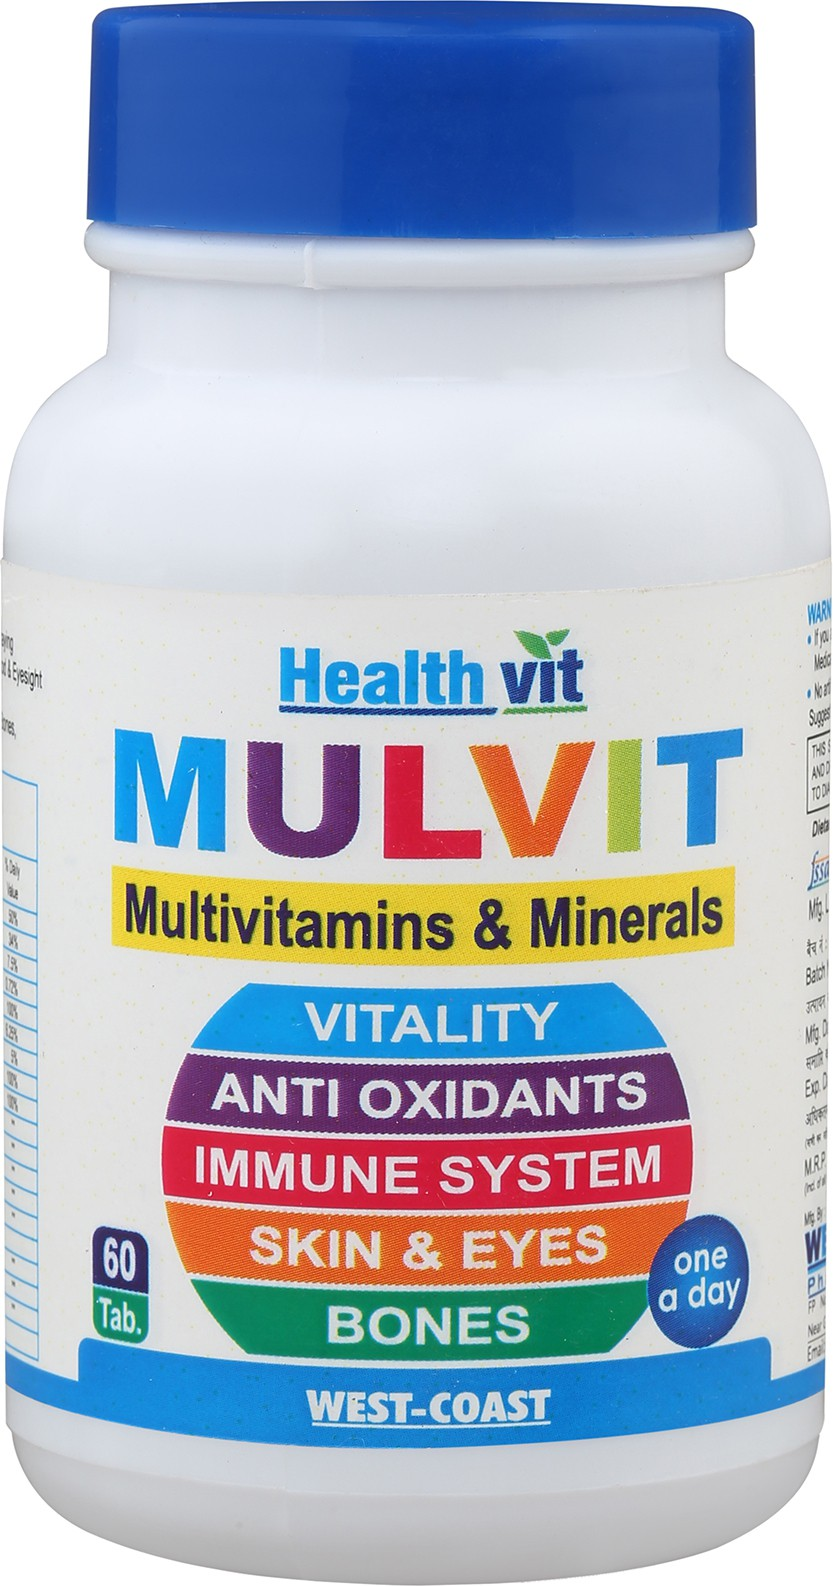 Deals | Healthvit & More Vitamin Supplements